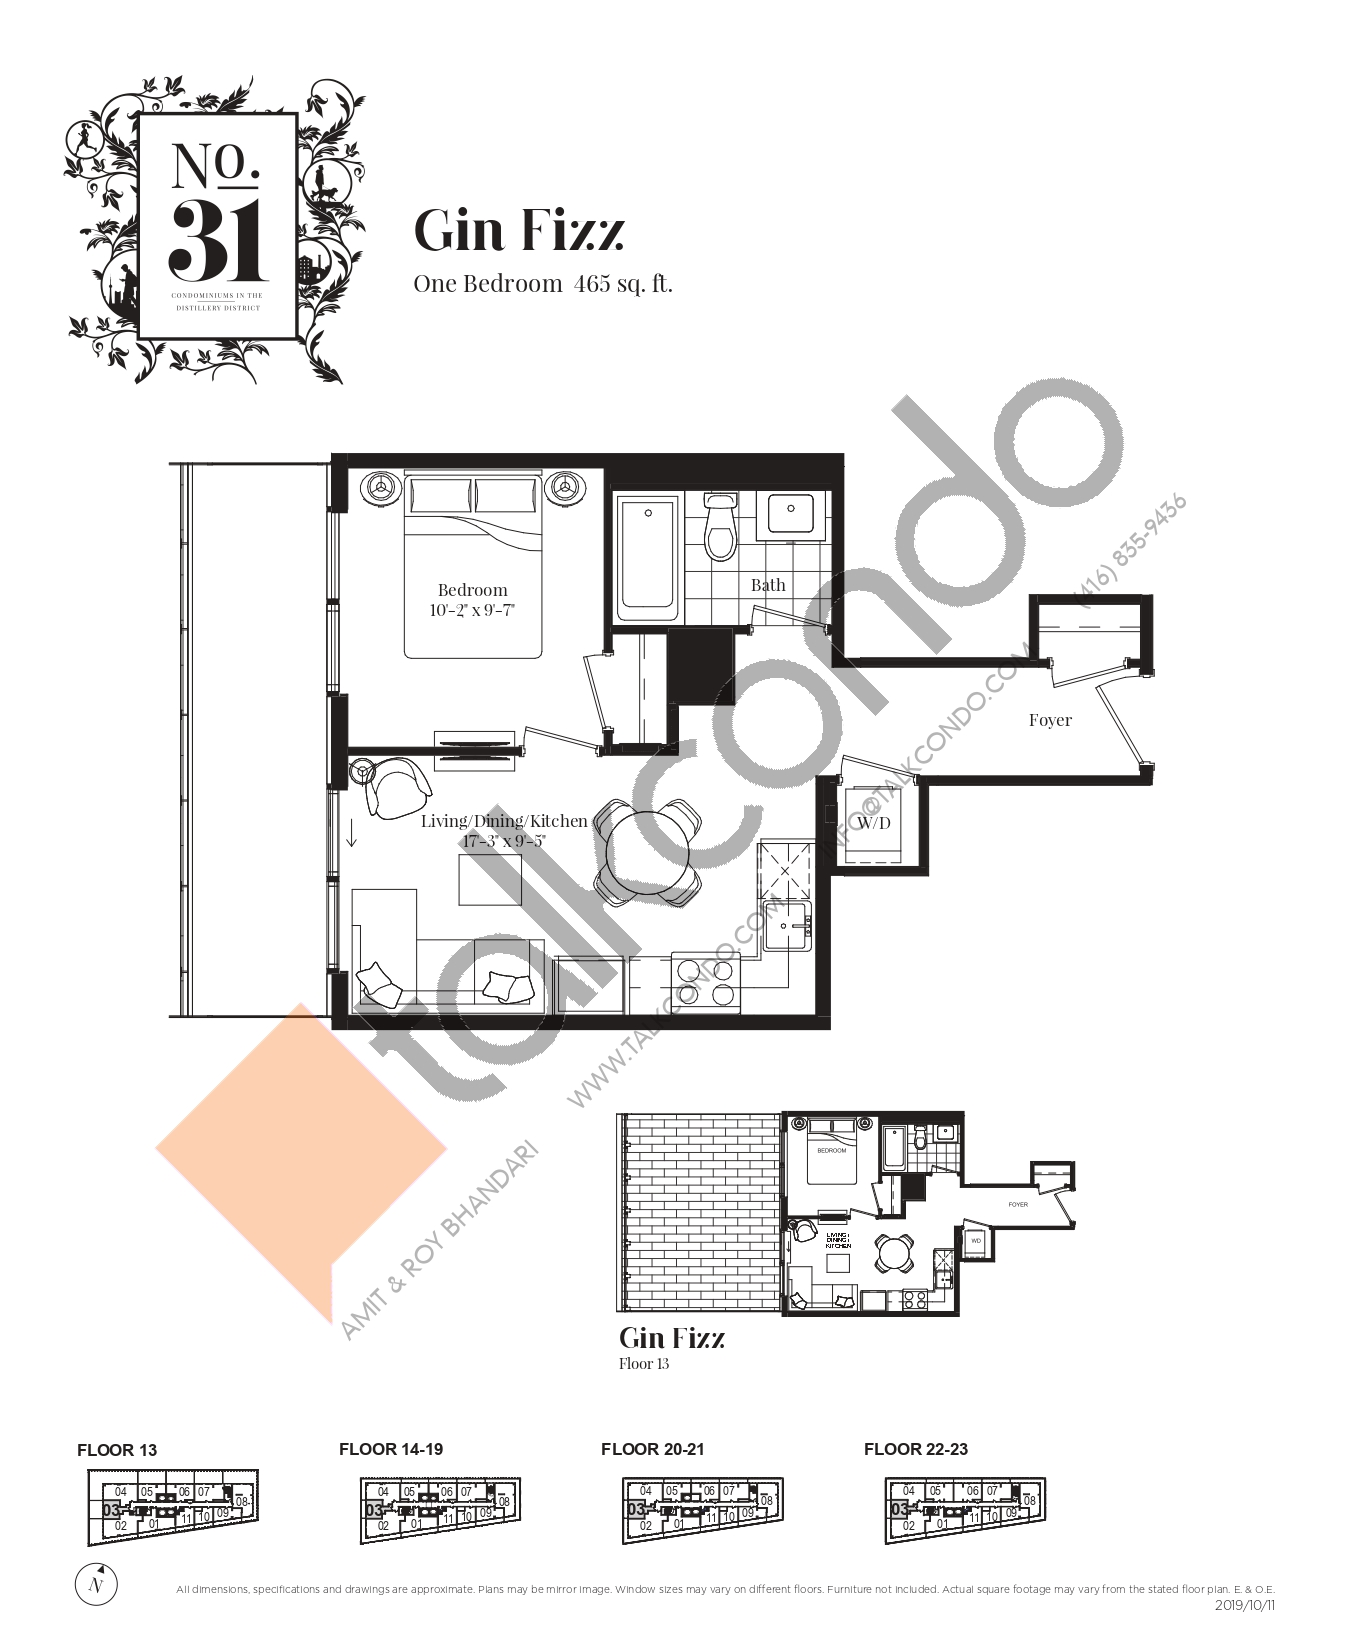 Gin Fizz Floor Plan at No. 31 Condos - 465 sq.ft